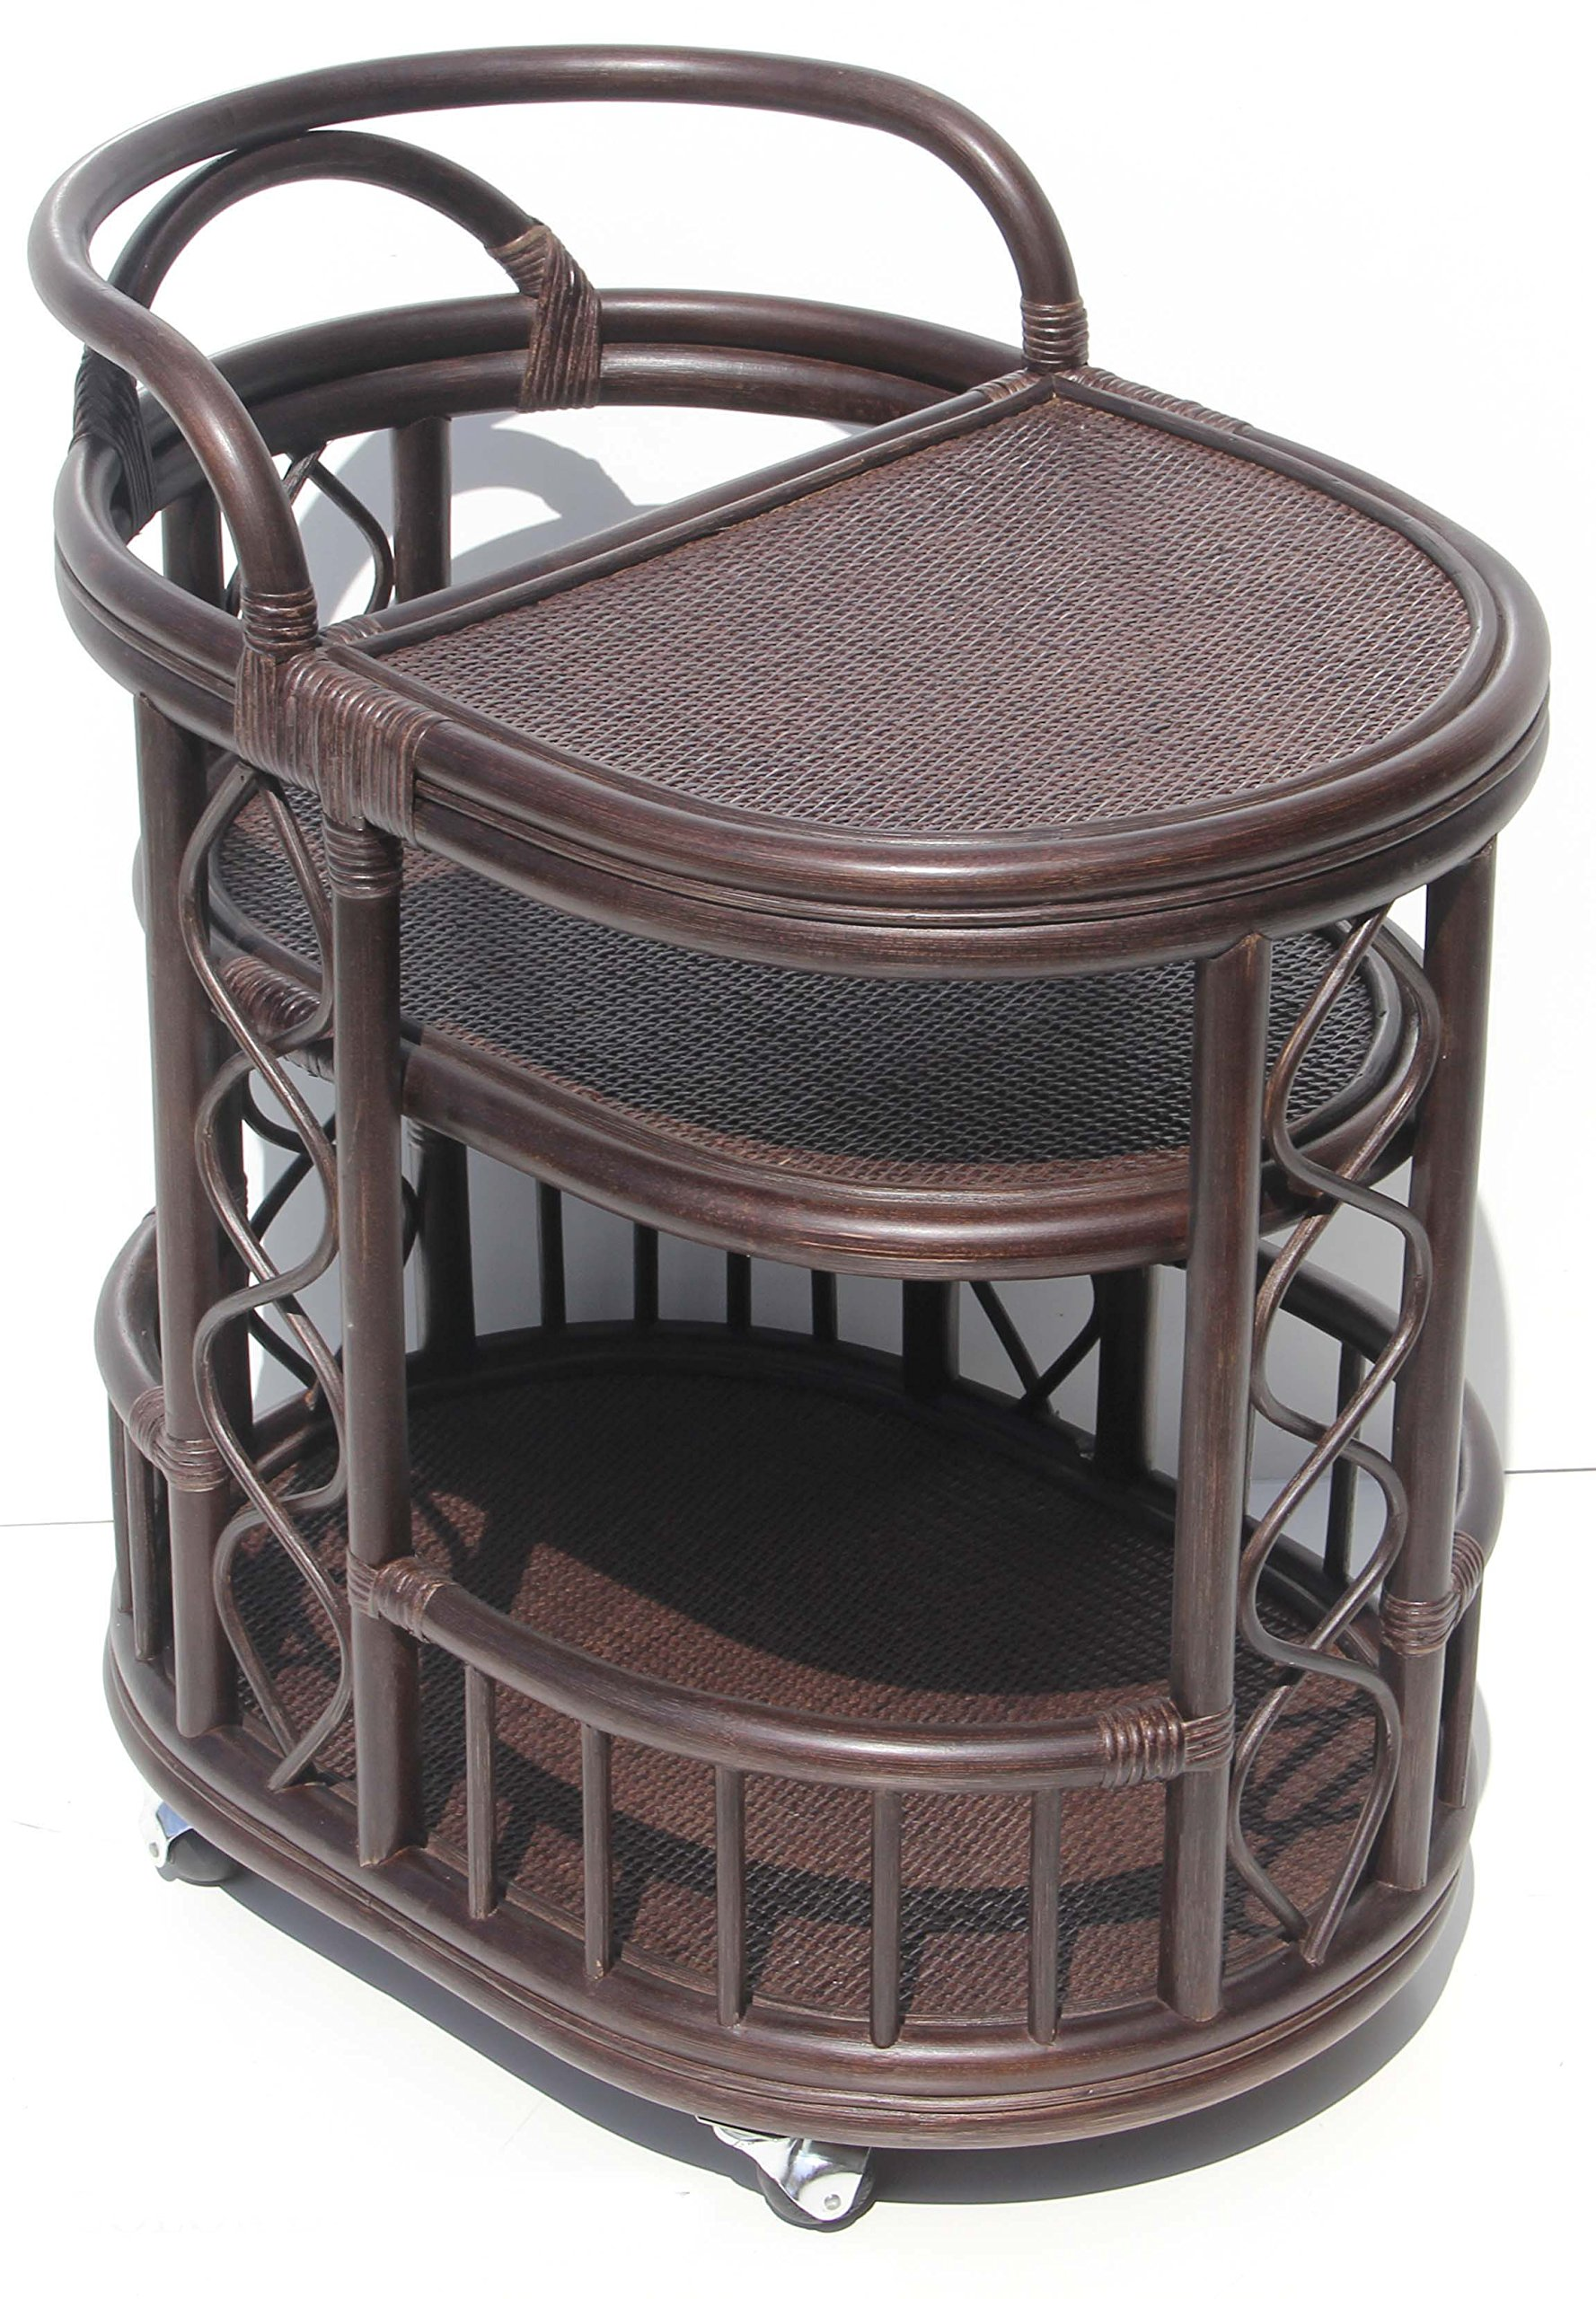 Moving Serving Cart Bar Table Natural Rattan Wicker Exclusive Handmade ECO, Cognac by SunBear Furniture (Image #7)